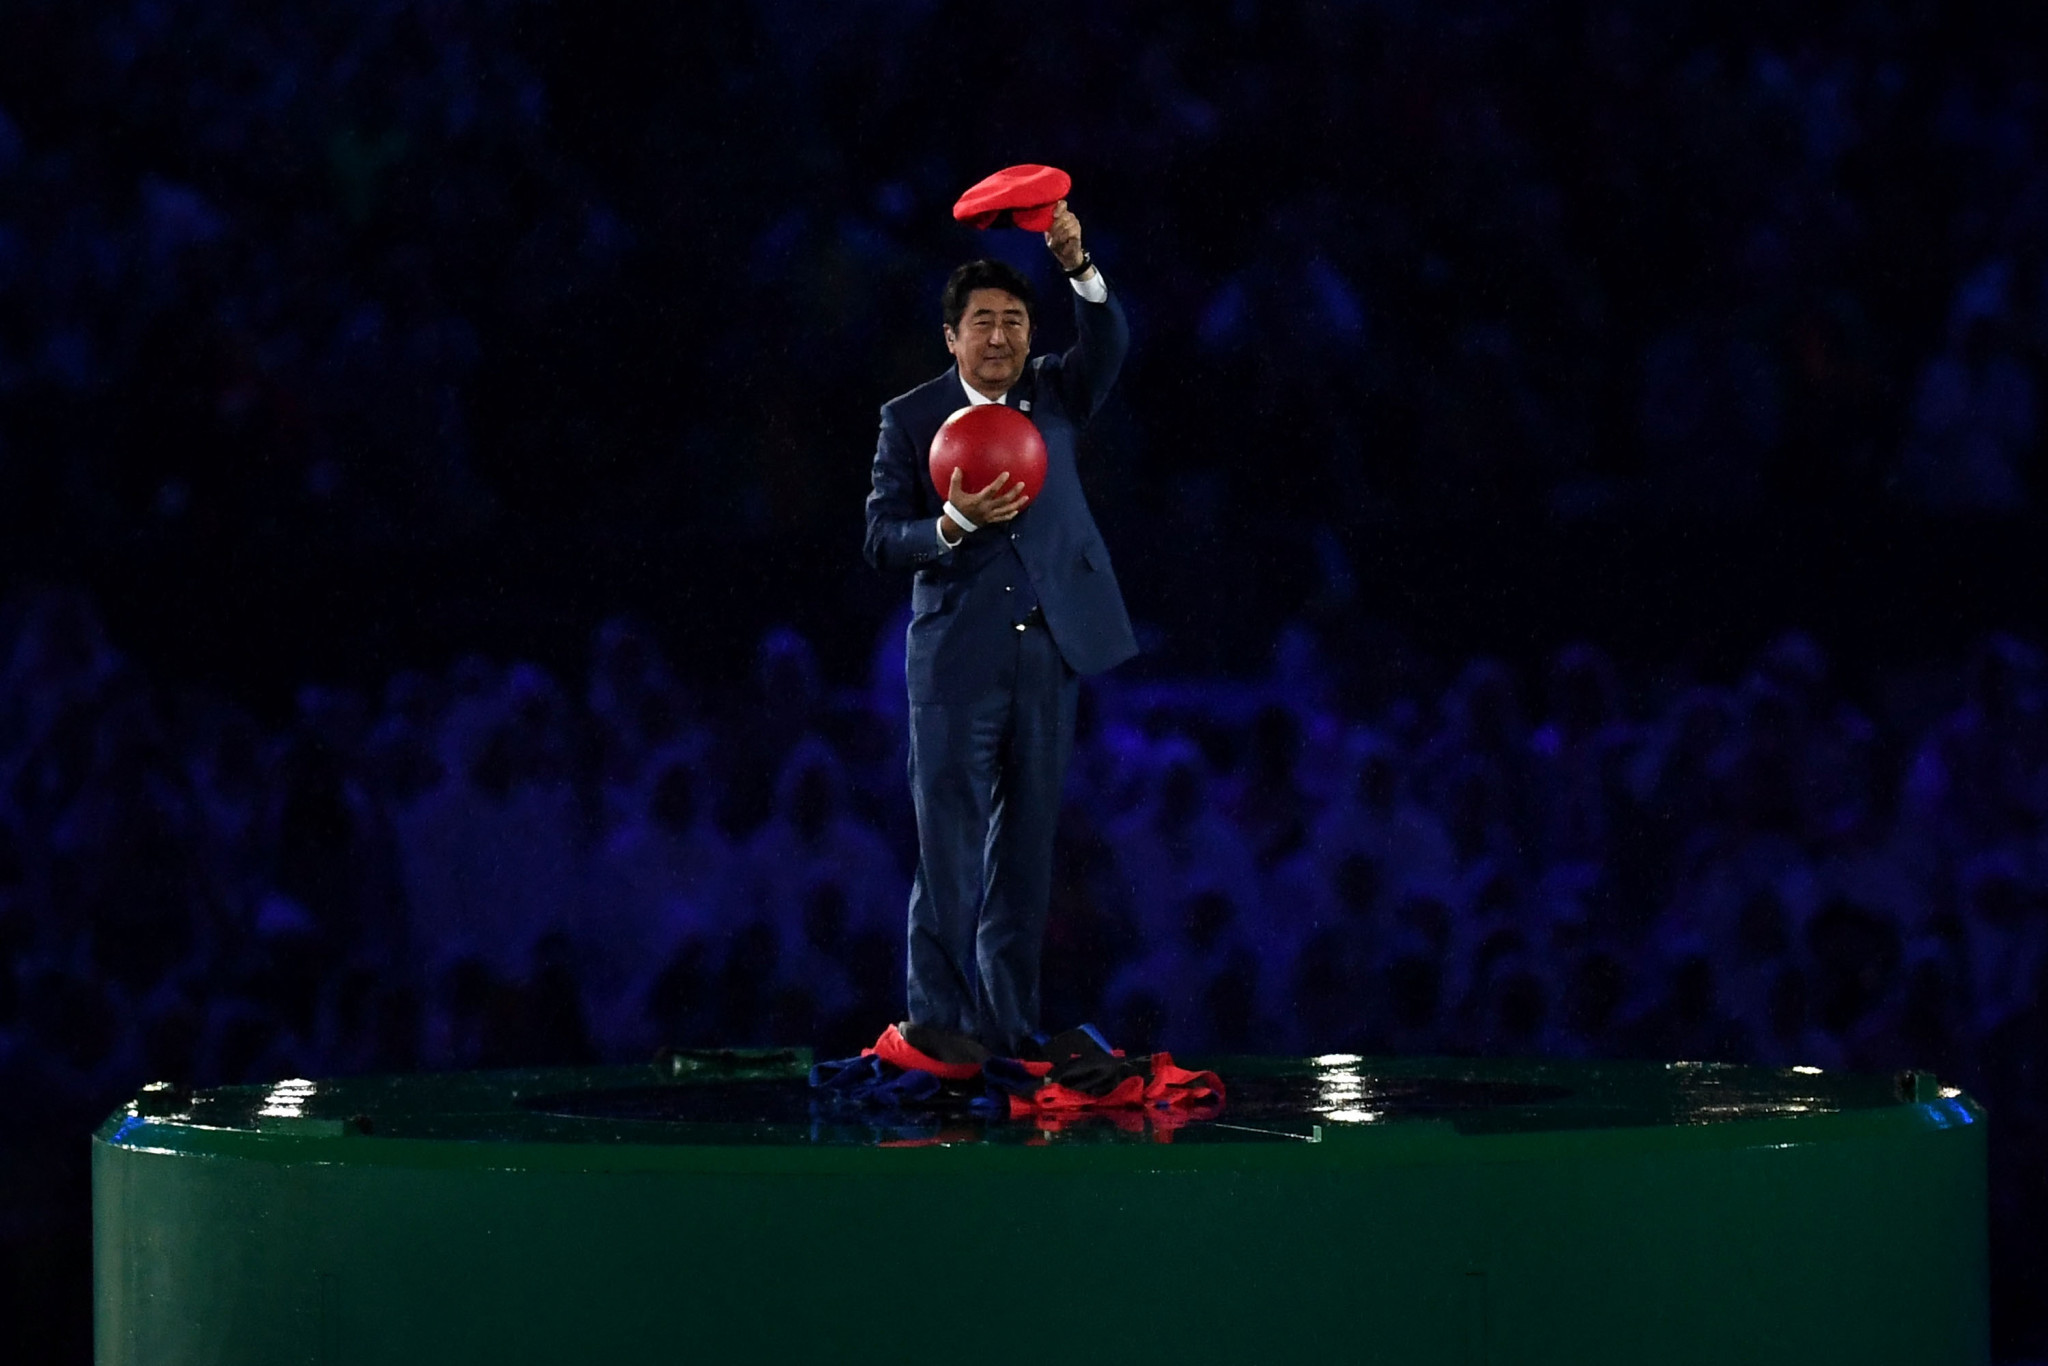 Shinzō Abe played a prominent role at the Rio 2016 Closing Ceremony ©Getty Images